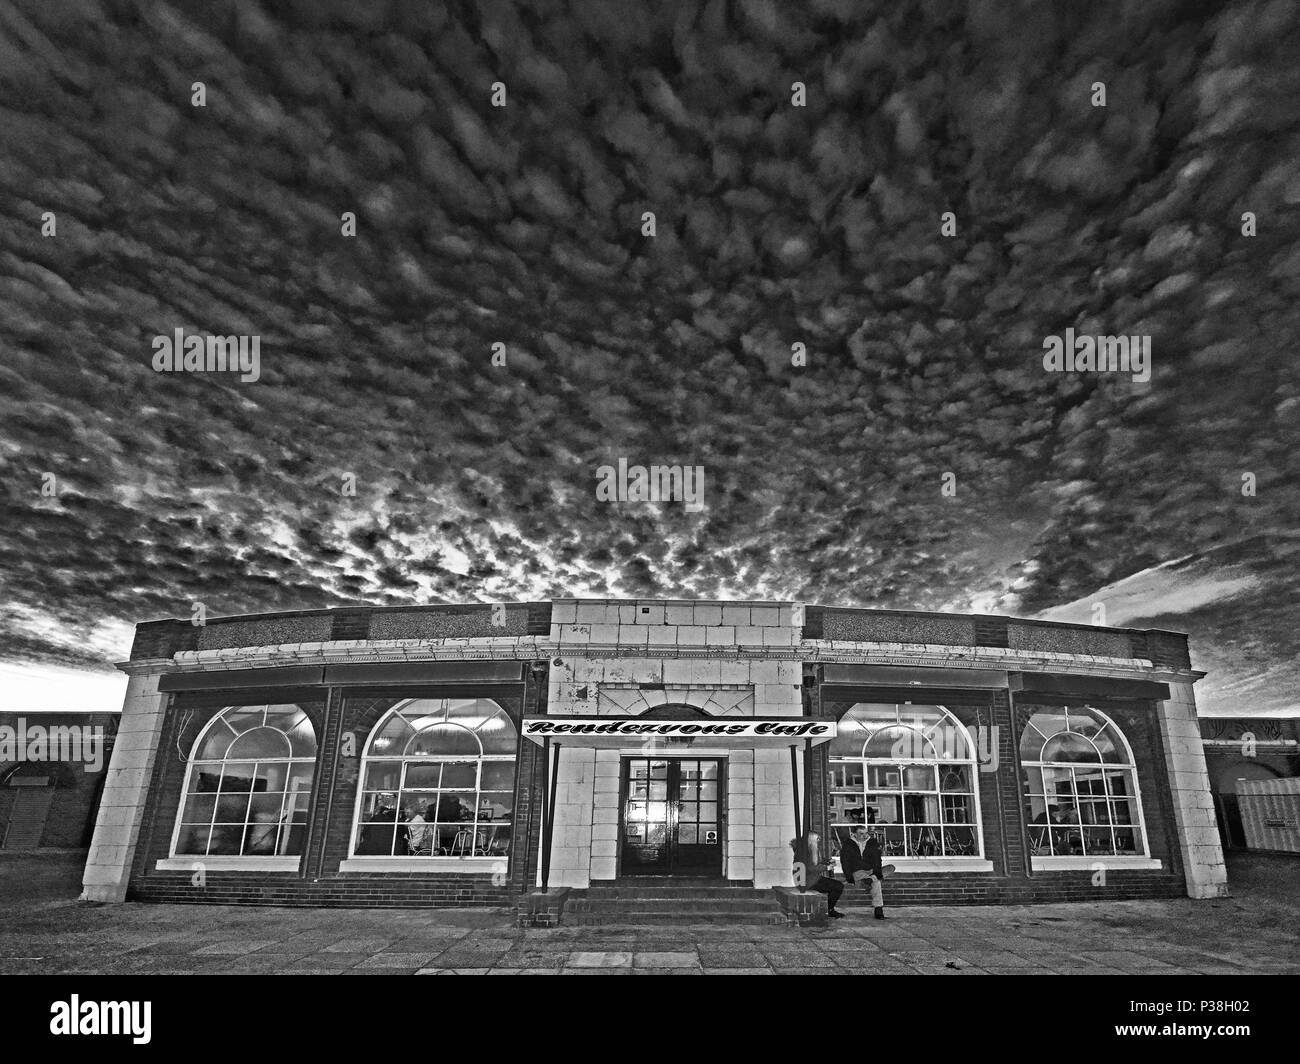 Rendevous Cafe Whitley Bay - Stock Image